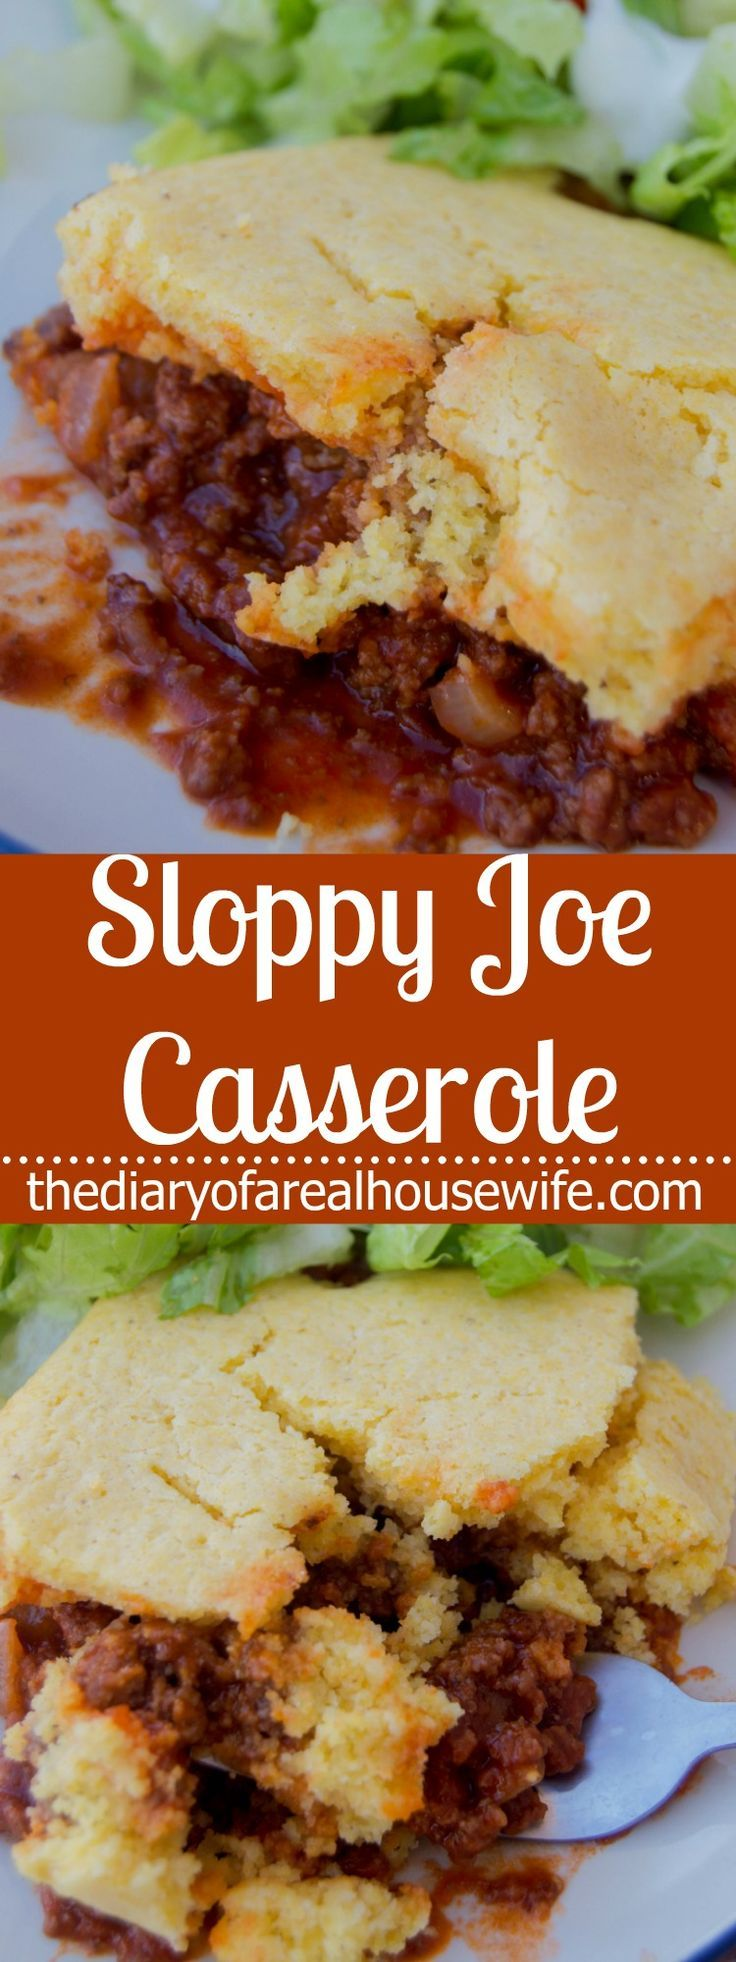 A childhood favorite done a new way! This Sloppy Joe Casserole is a family favorite you are going to want to try. My entire family cleaned their plates for this one!